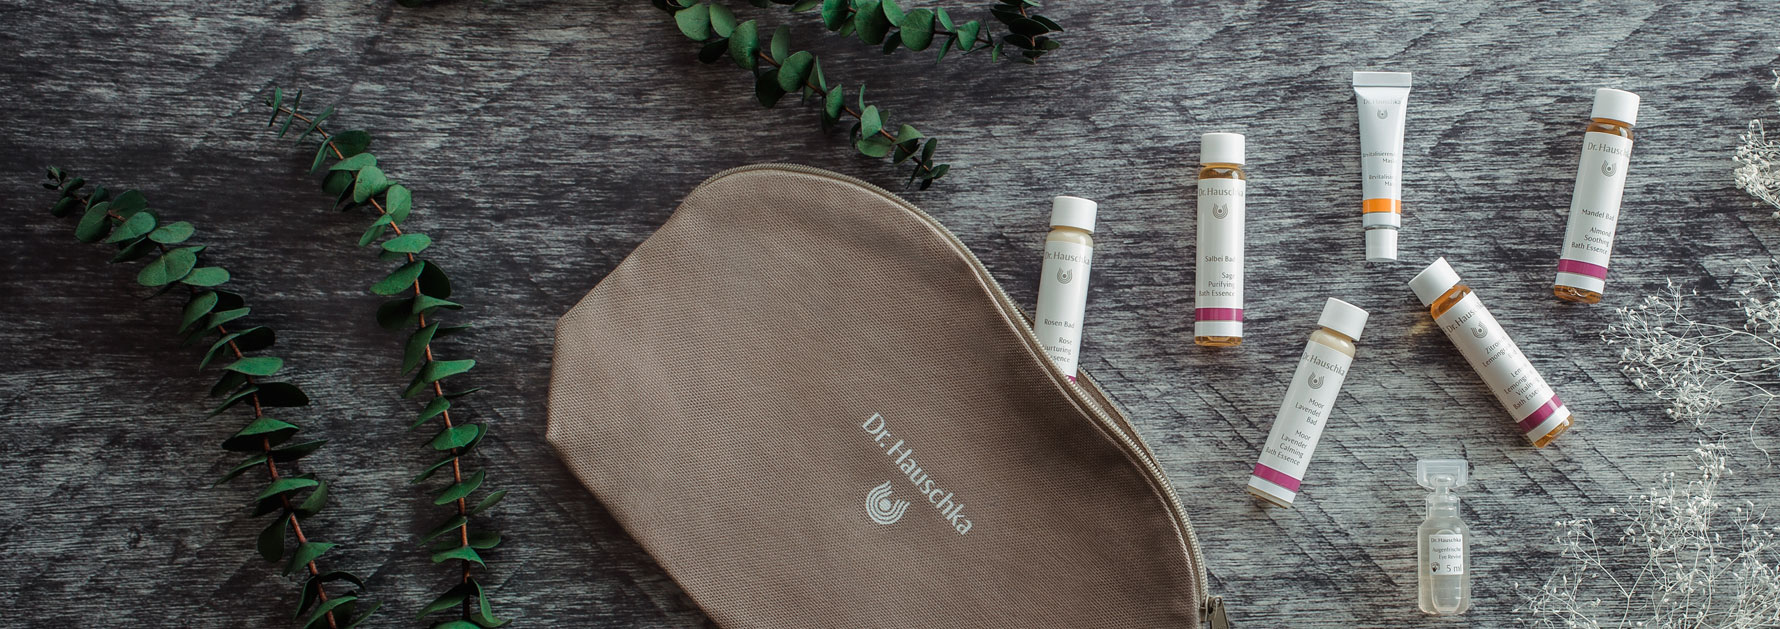 Are you new to green beauty? Well, here is a list of green beauty gift ideas for any beginner of the ethical lifestyle. We've highlighted the ethics each gift and tell you which cruelty-free ingredients and earth-friendly ingredients are worth looking for. Whether you want vegan beauty gifts, beauty gifts for acne, makeup gifts, or even customizable beauty gifts - there is an eco-conscious option in this list! #greenbeauty #ethicalbeauty #ecofriendly